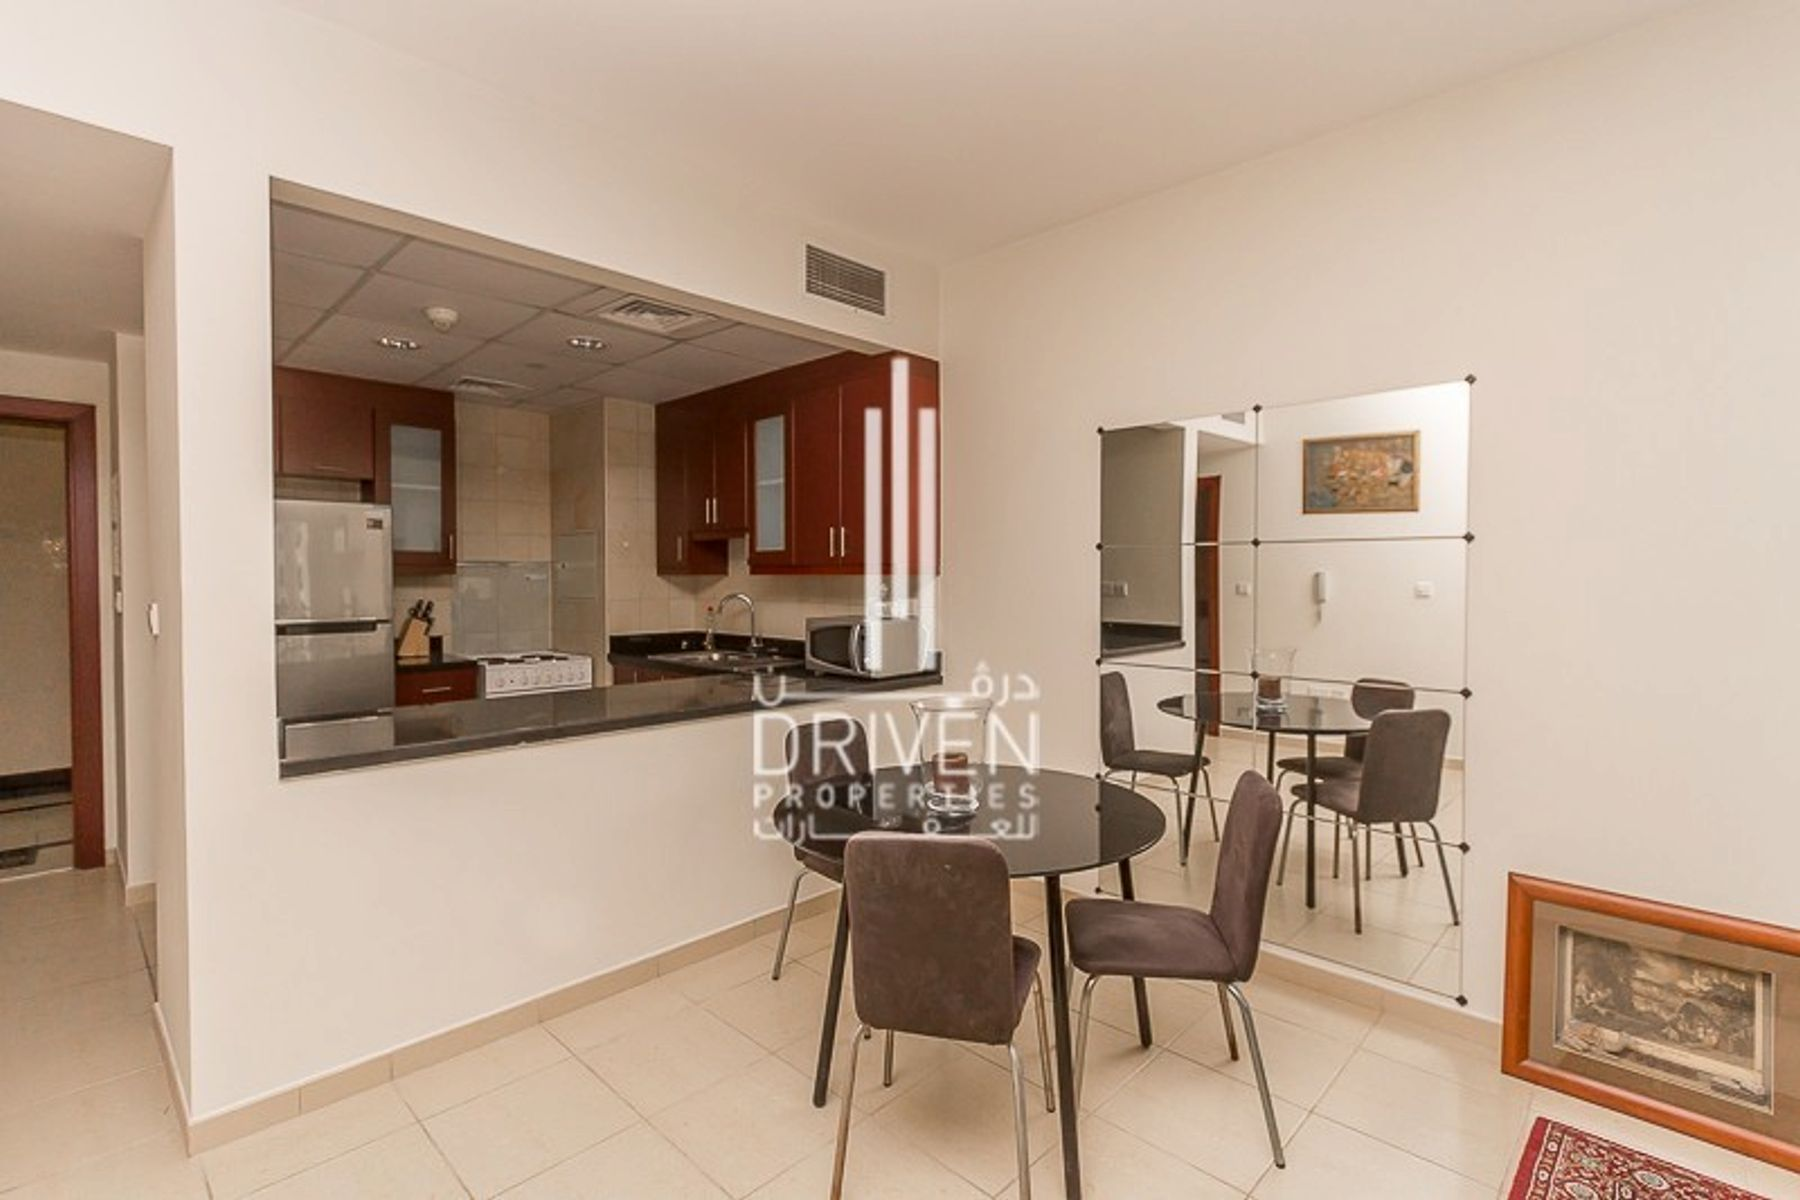 Studio for Rent in Murjan 2 - Jumeirah Beach Residence